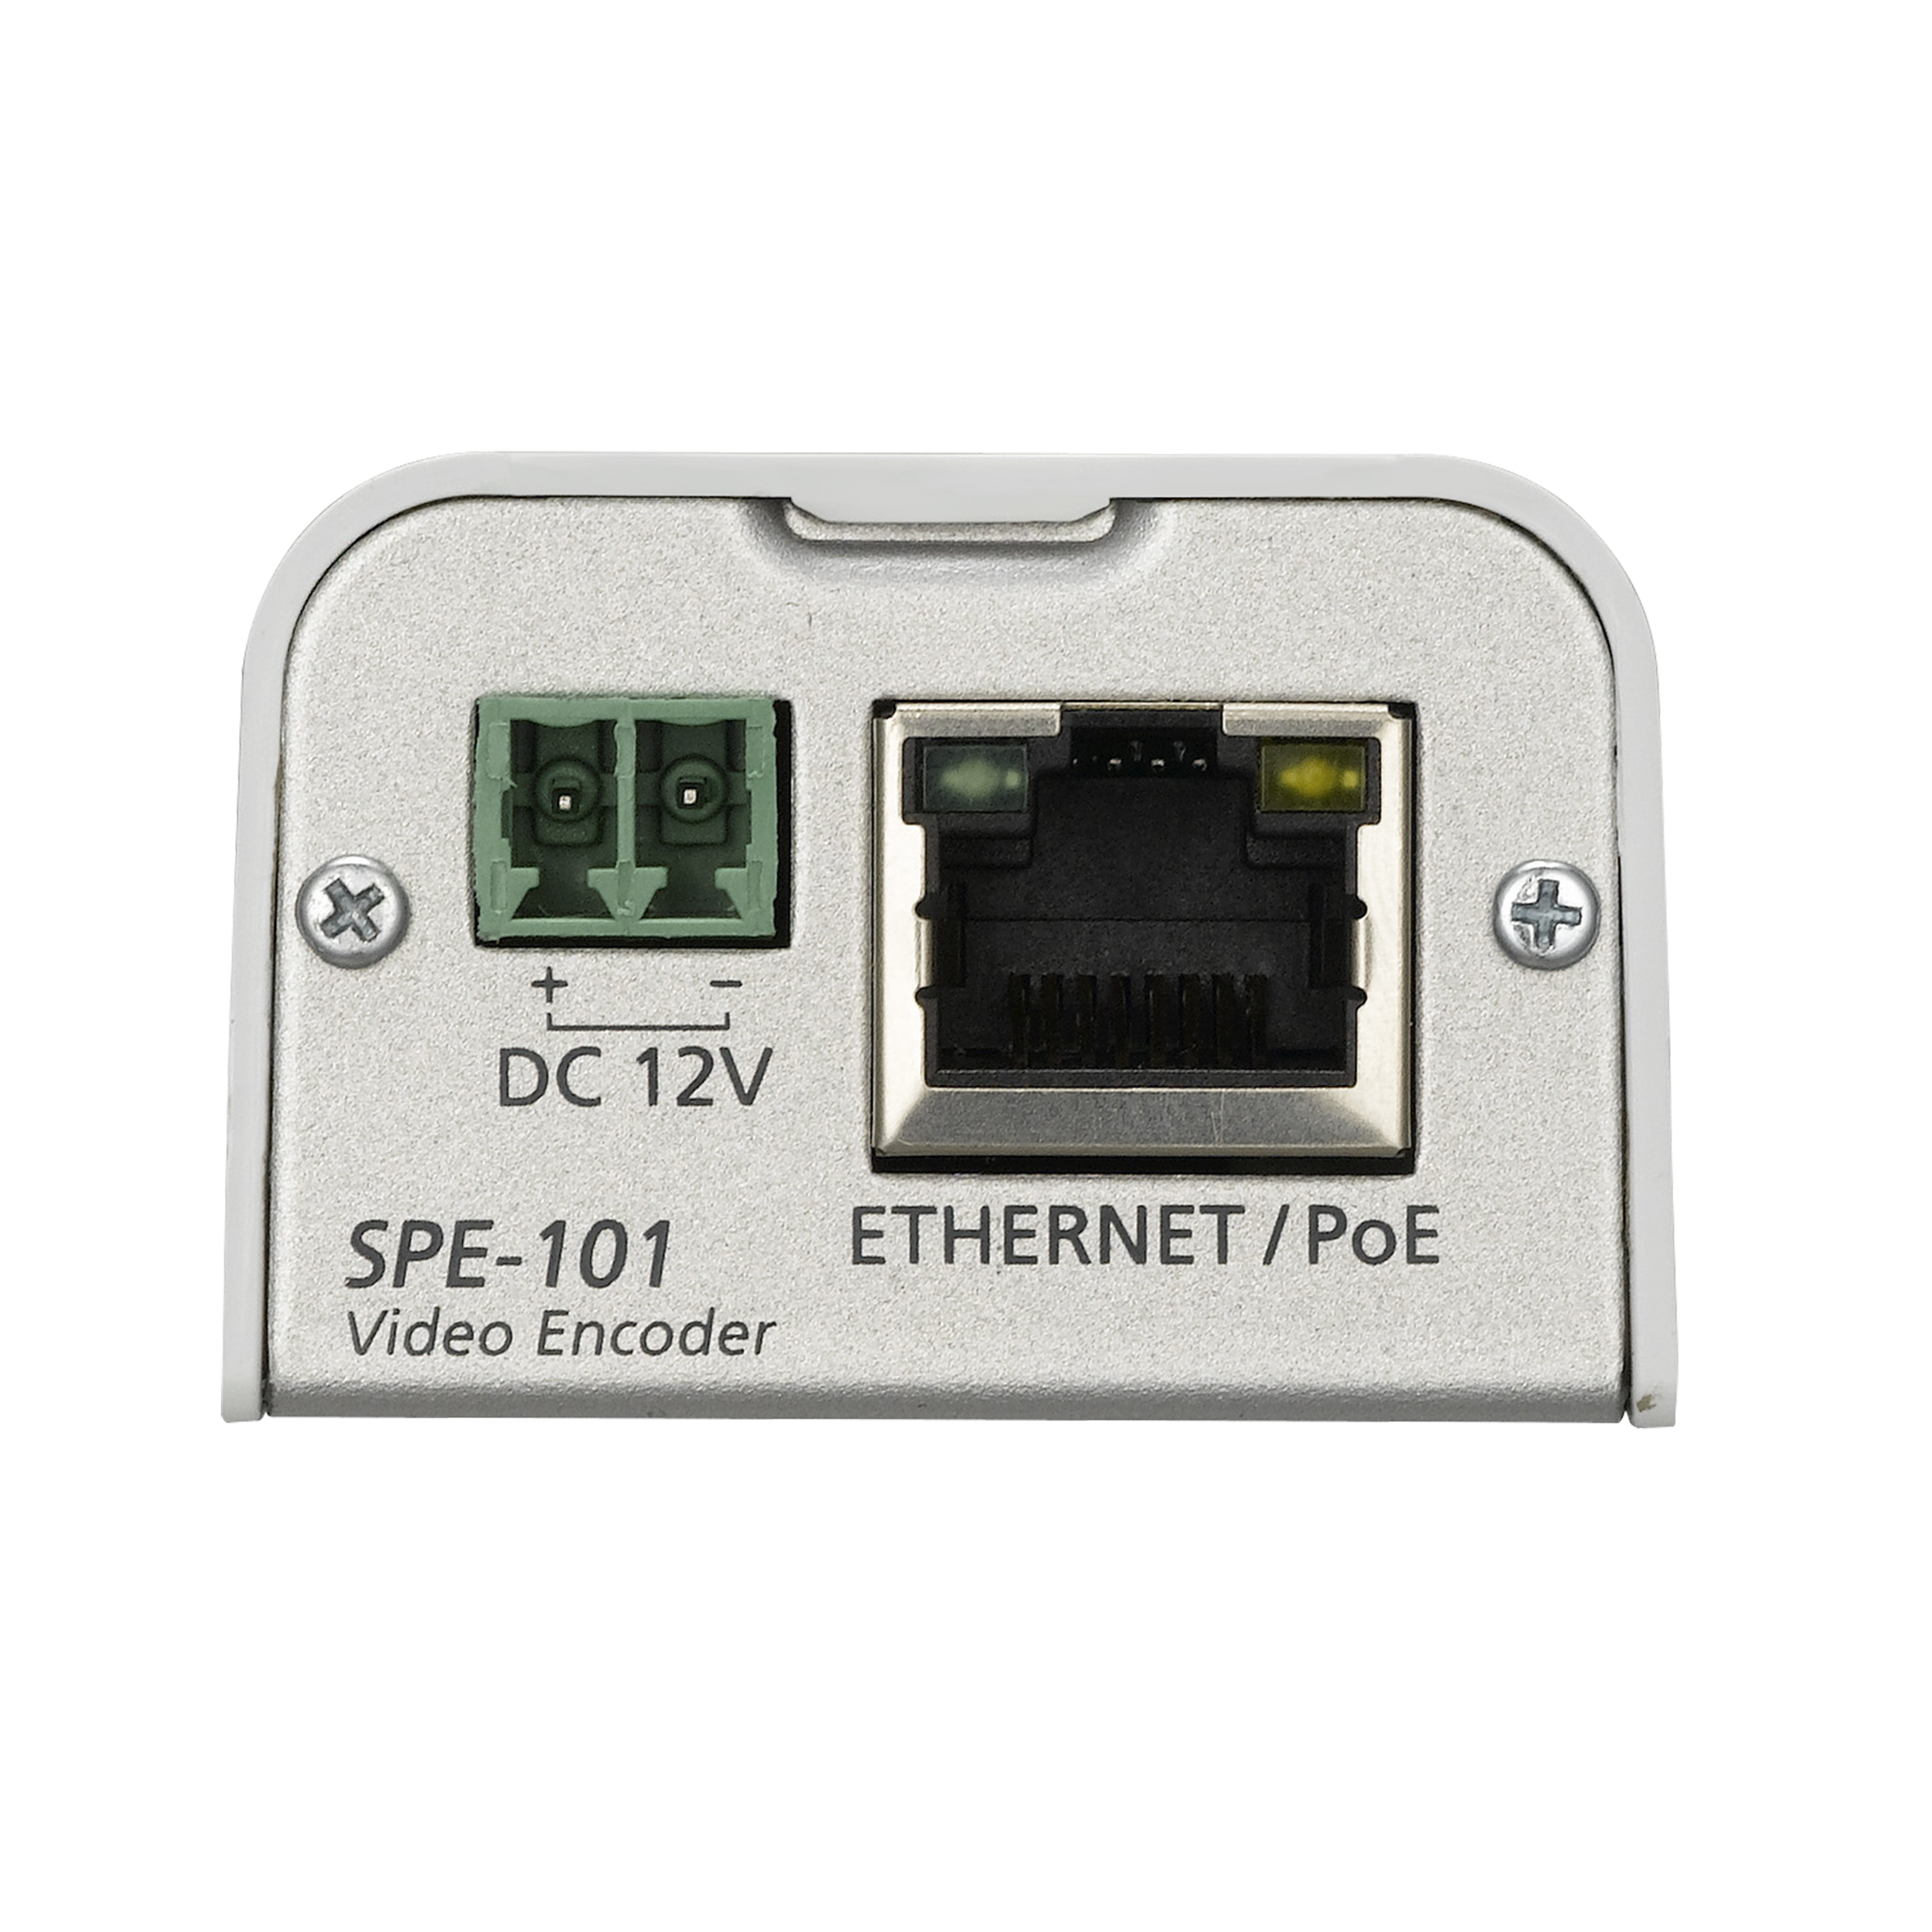 spe 101 ★samsung 1ch h264 network video encoder spe-101™ ^^ check price for samsung 1ch h264 network video encoder spe-101 get it to day on-line looking has currently gone an extended means it's modified the way shoppers and entrepreneurs do business nowada.